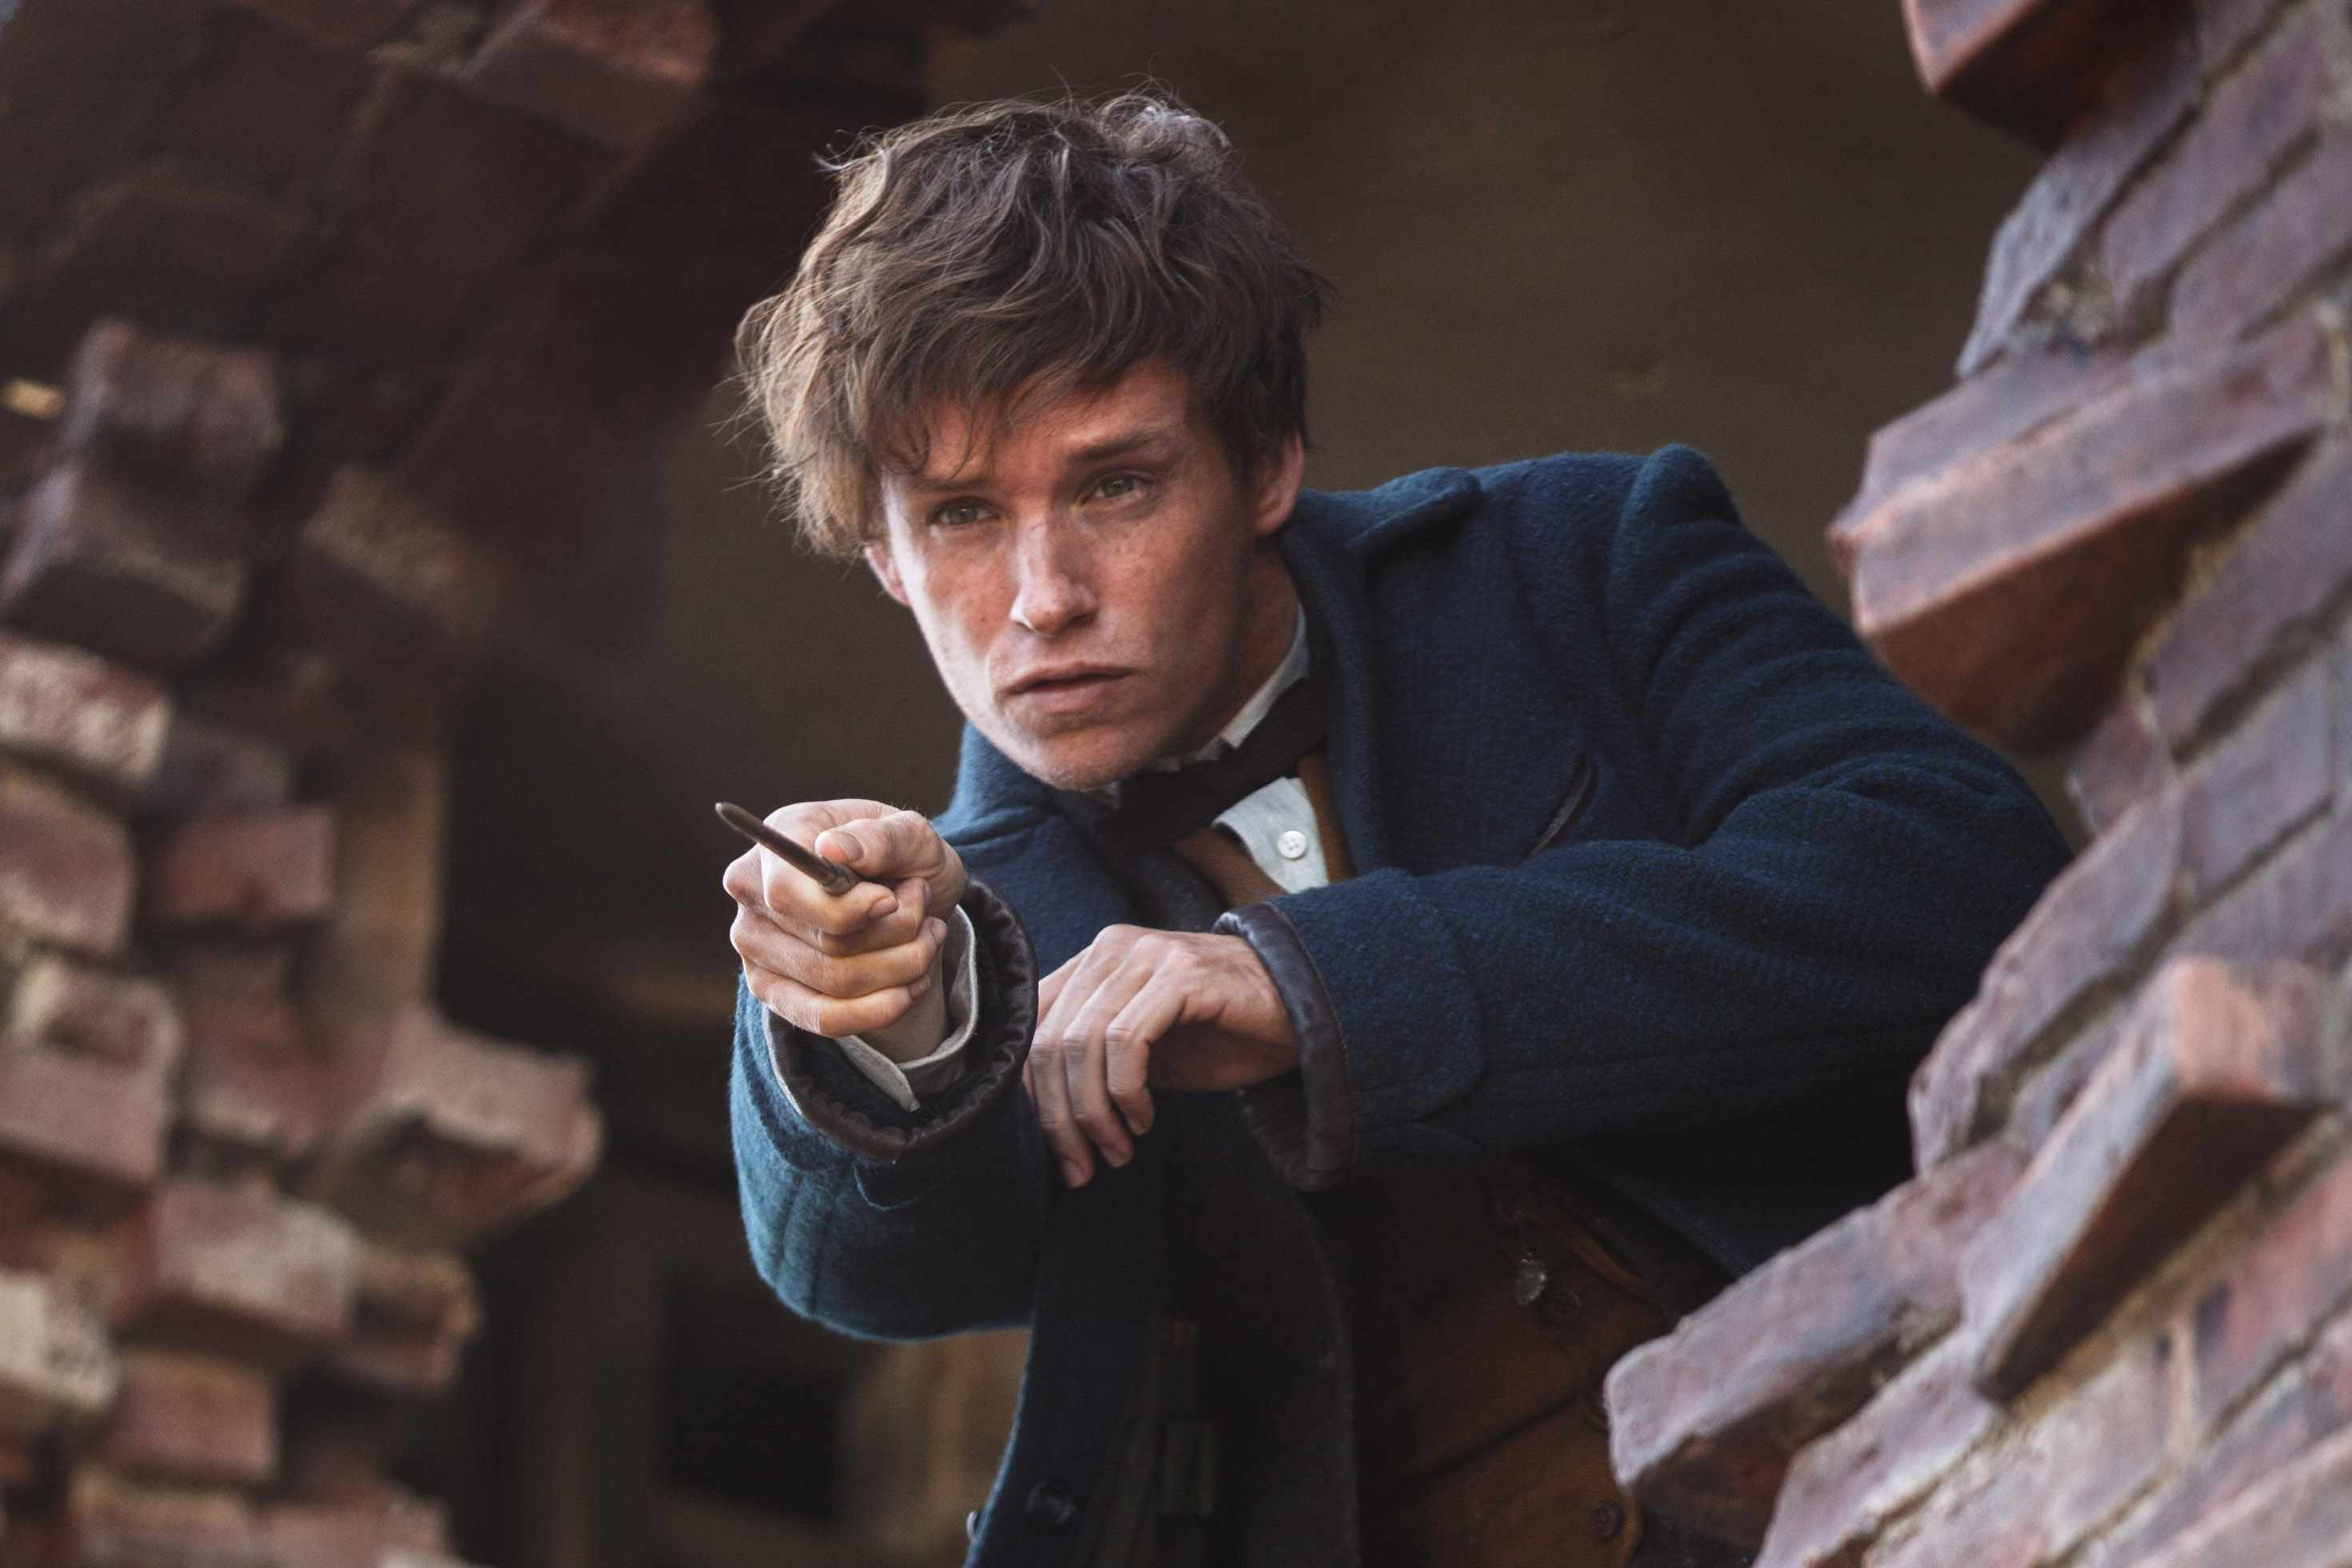 Eddie Redmayne as Newt Scamdander